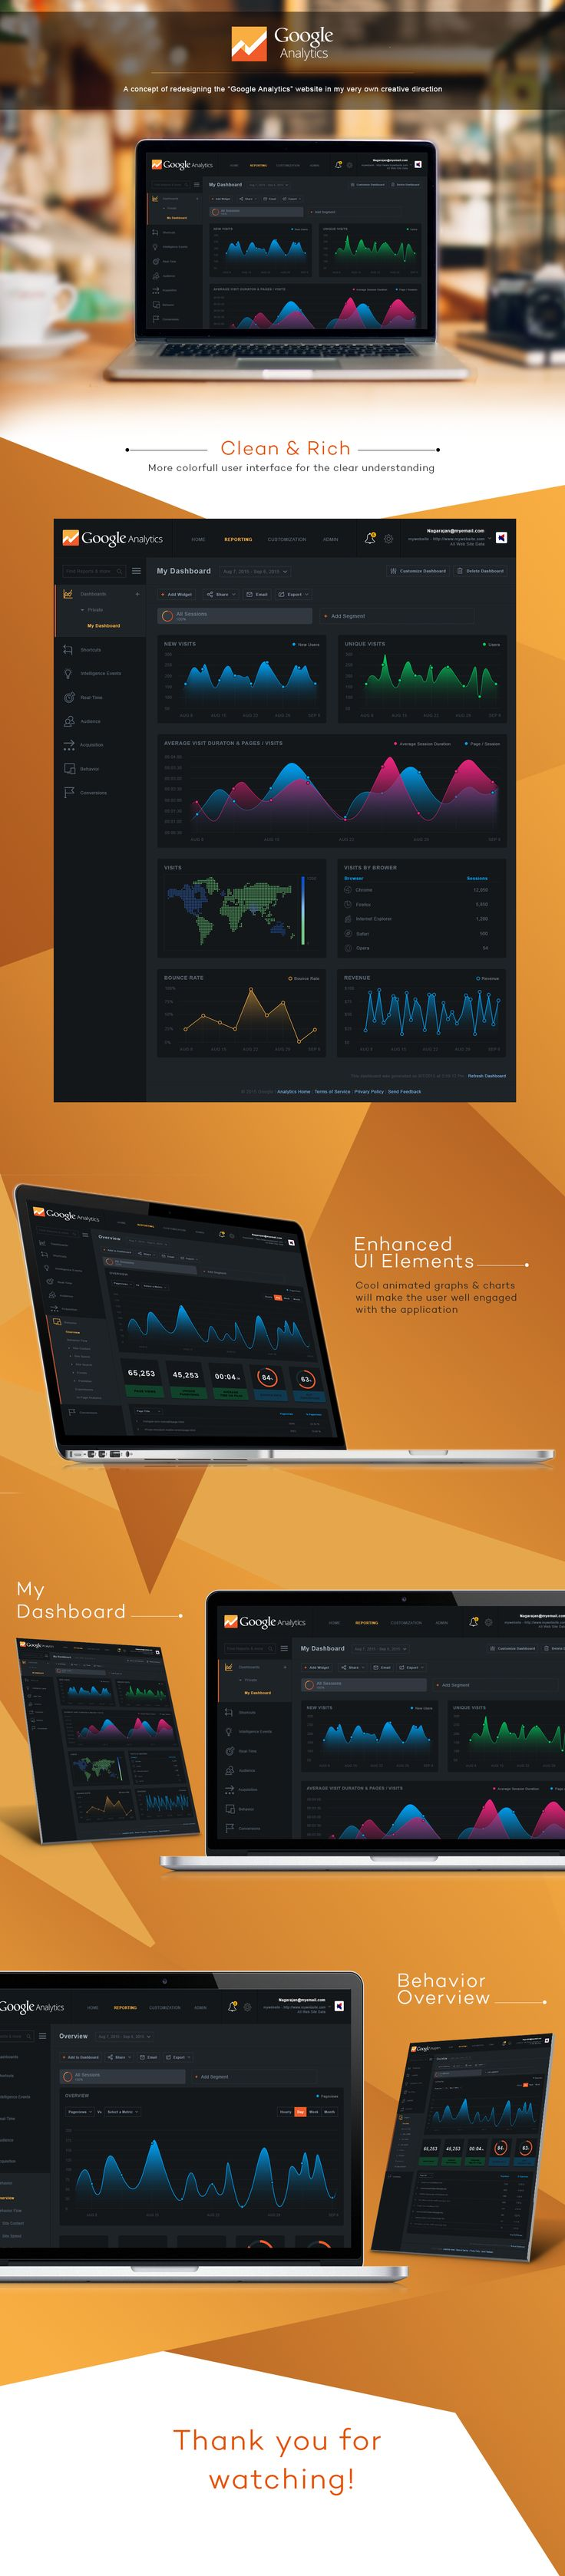 Google Analytics Dashboard on Behance